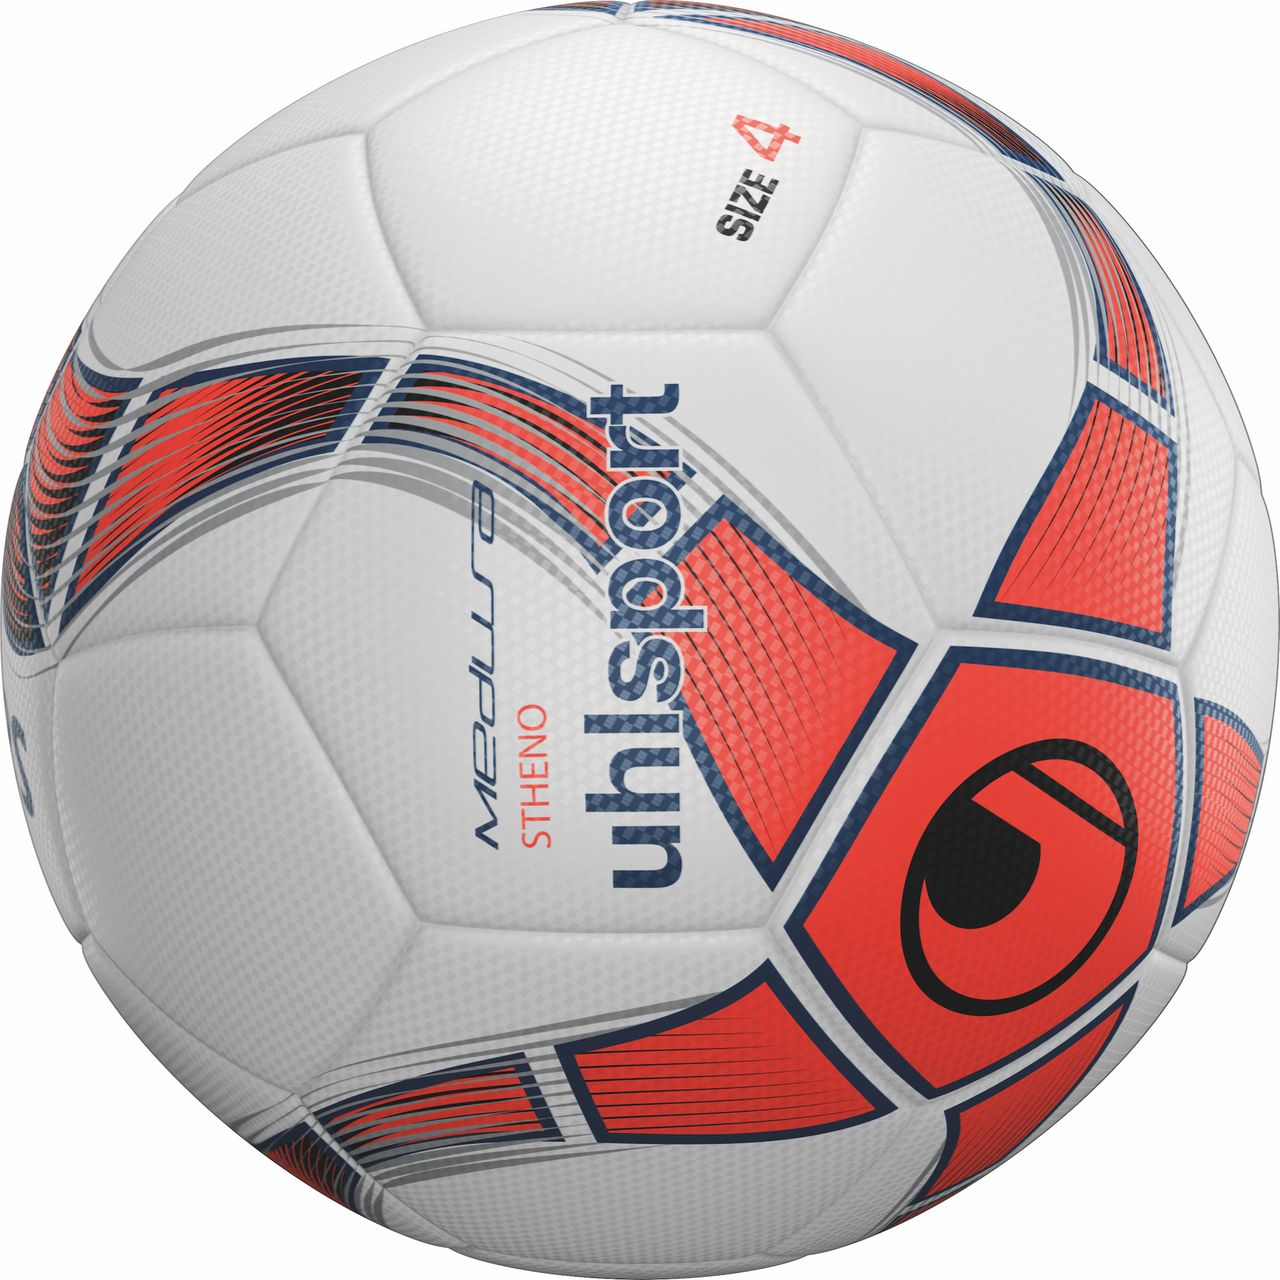 Uhlsport MEDUSA STHENO Futsal Match Ball